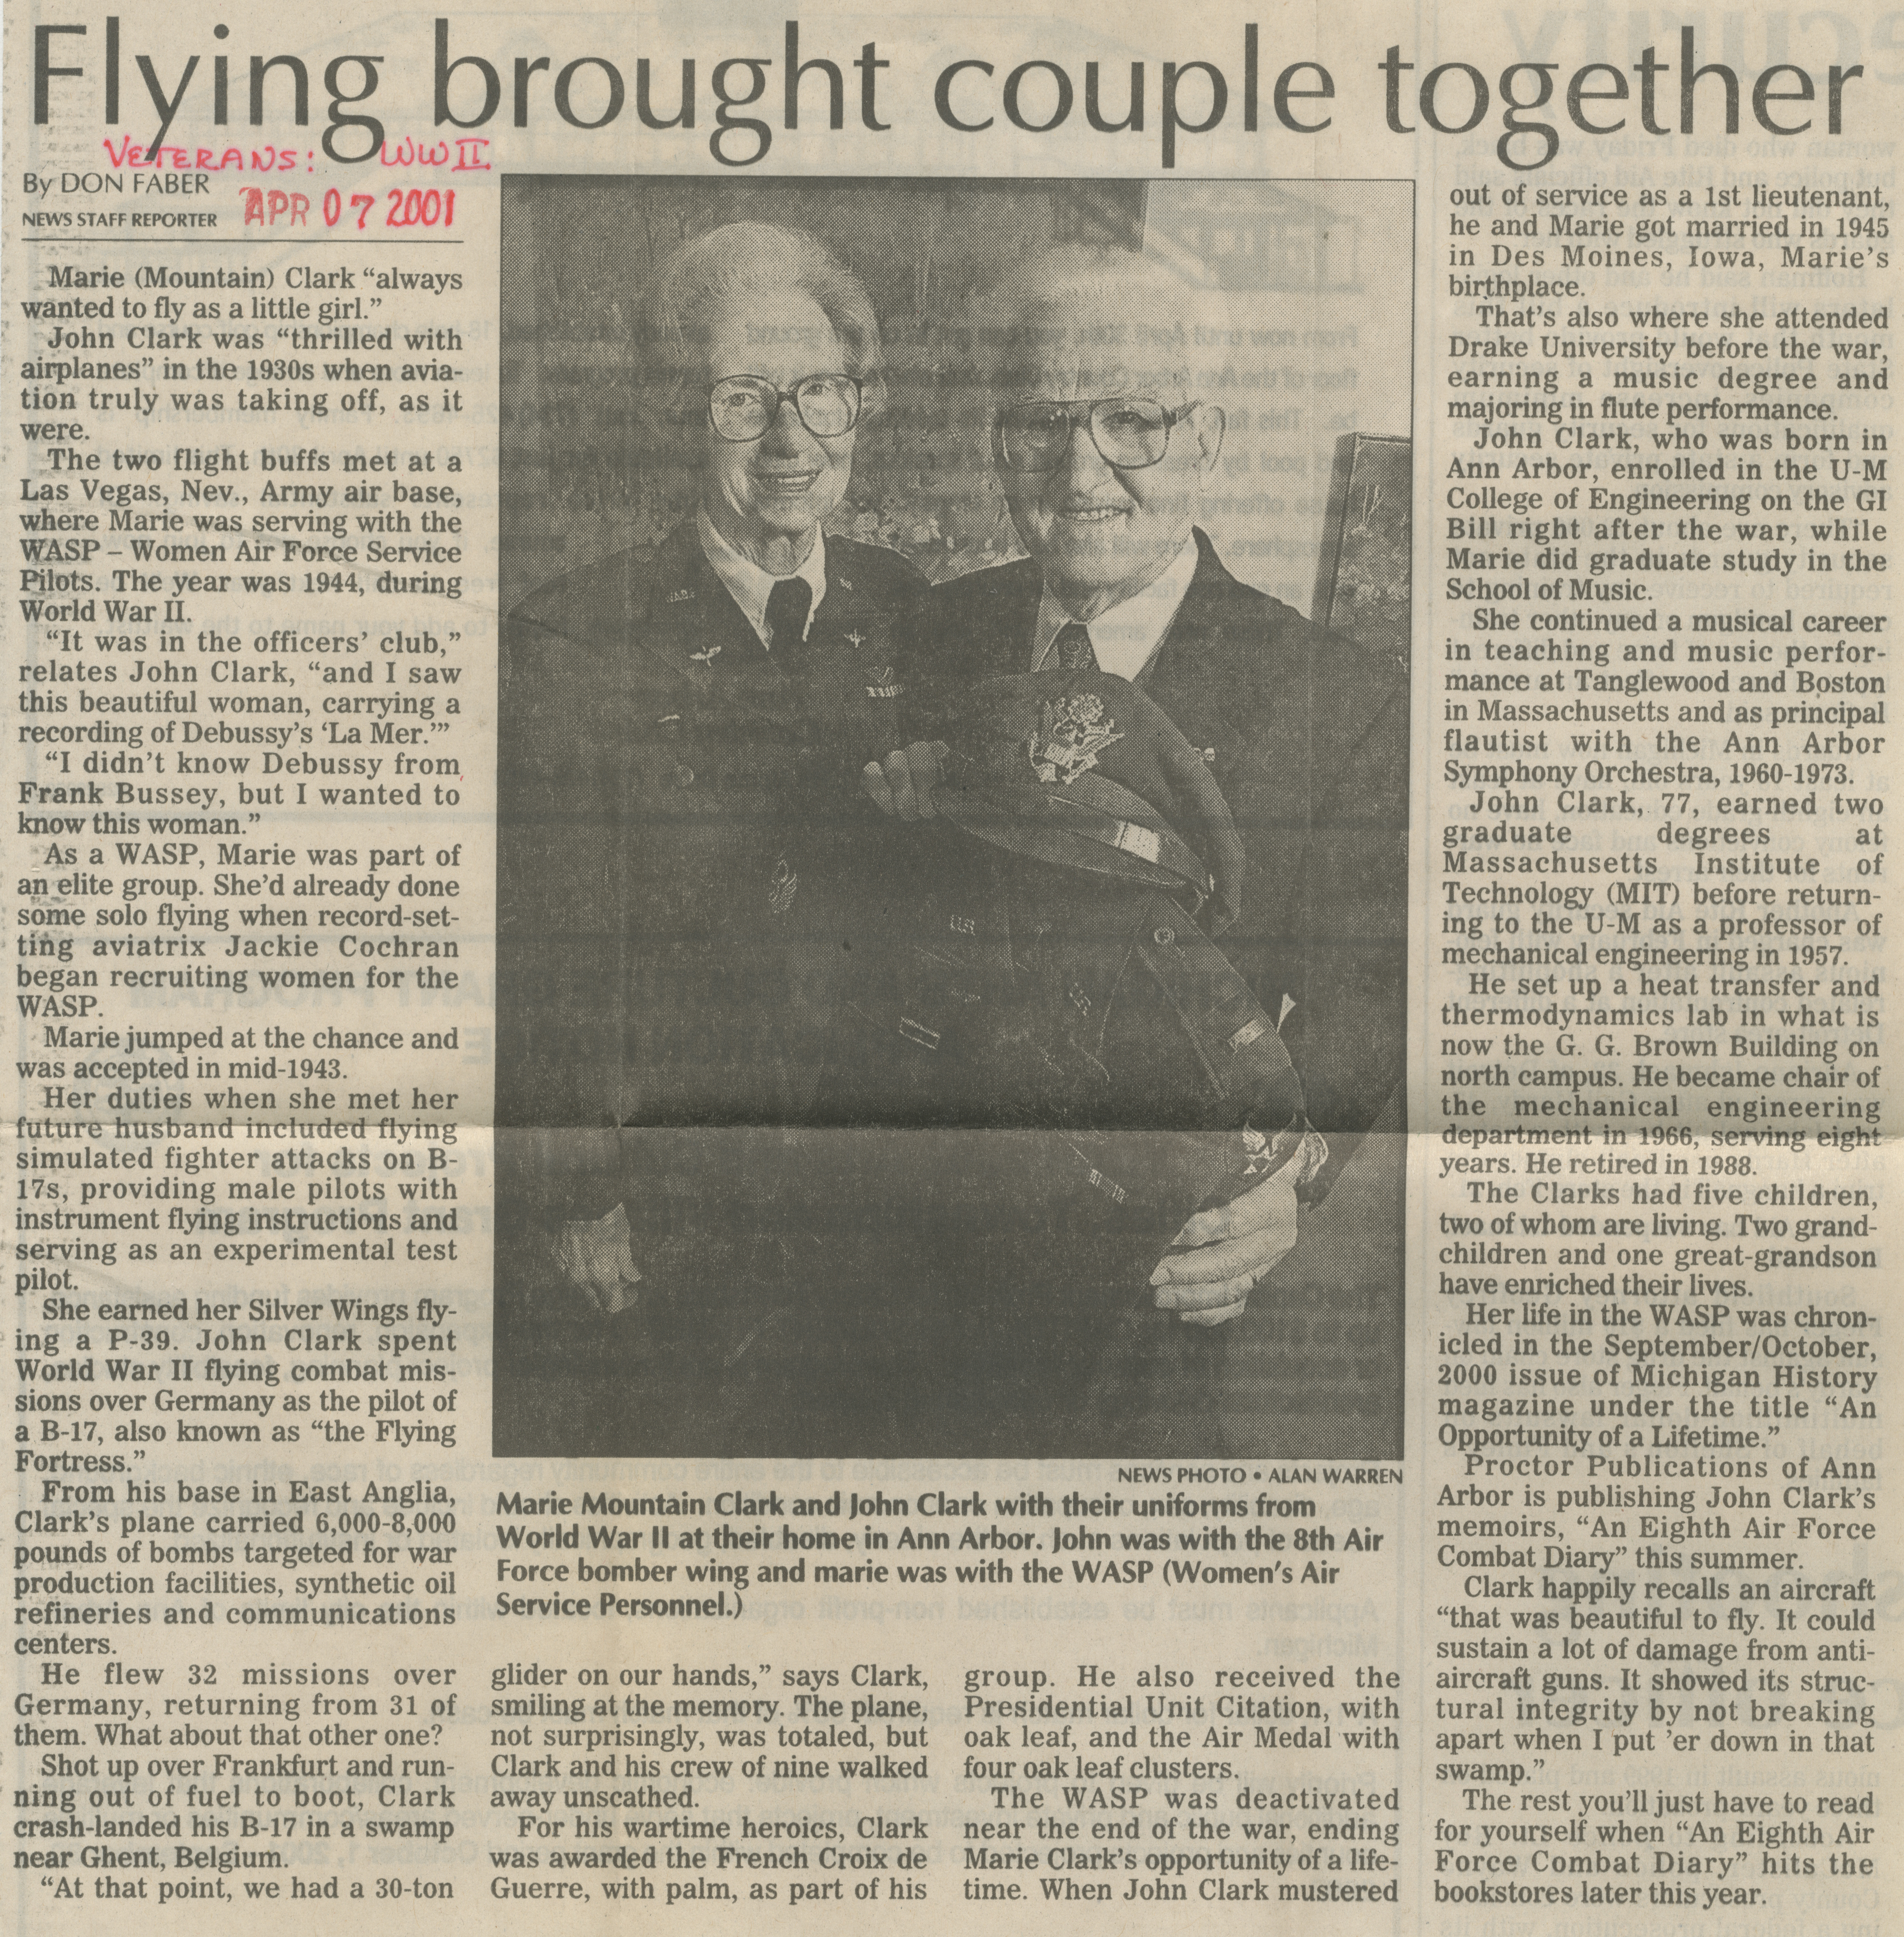 Flying brought couple together image